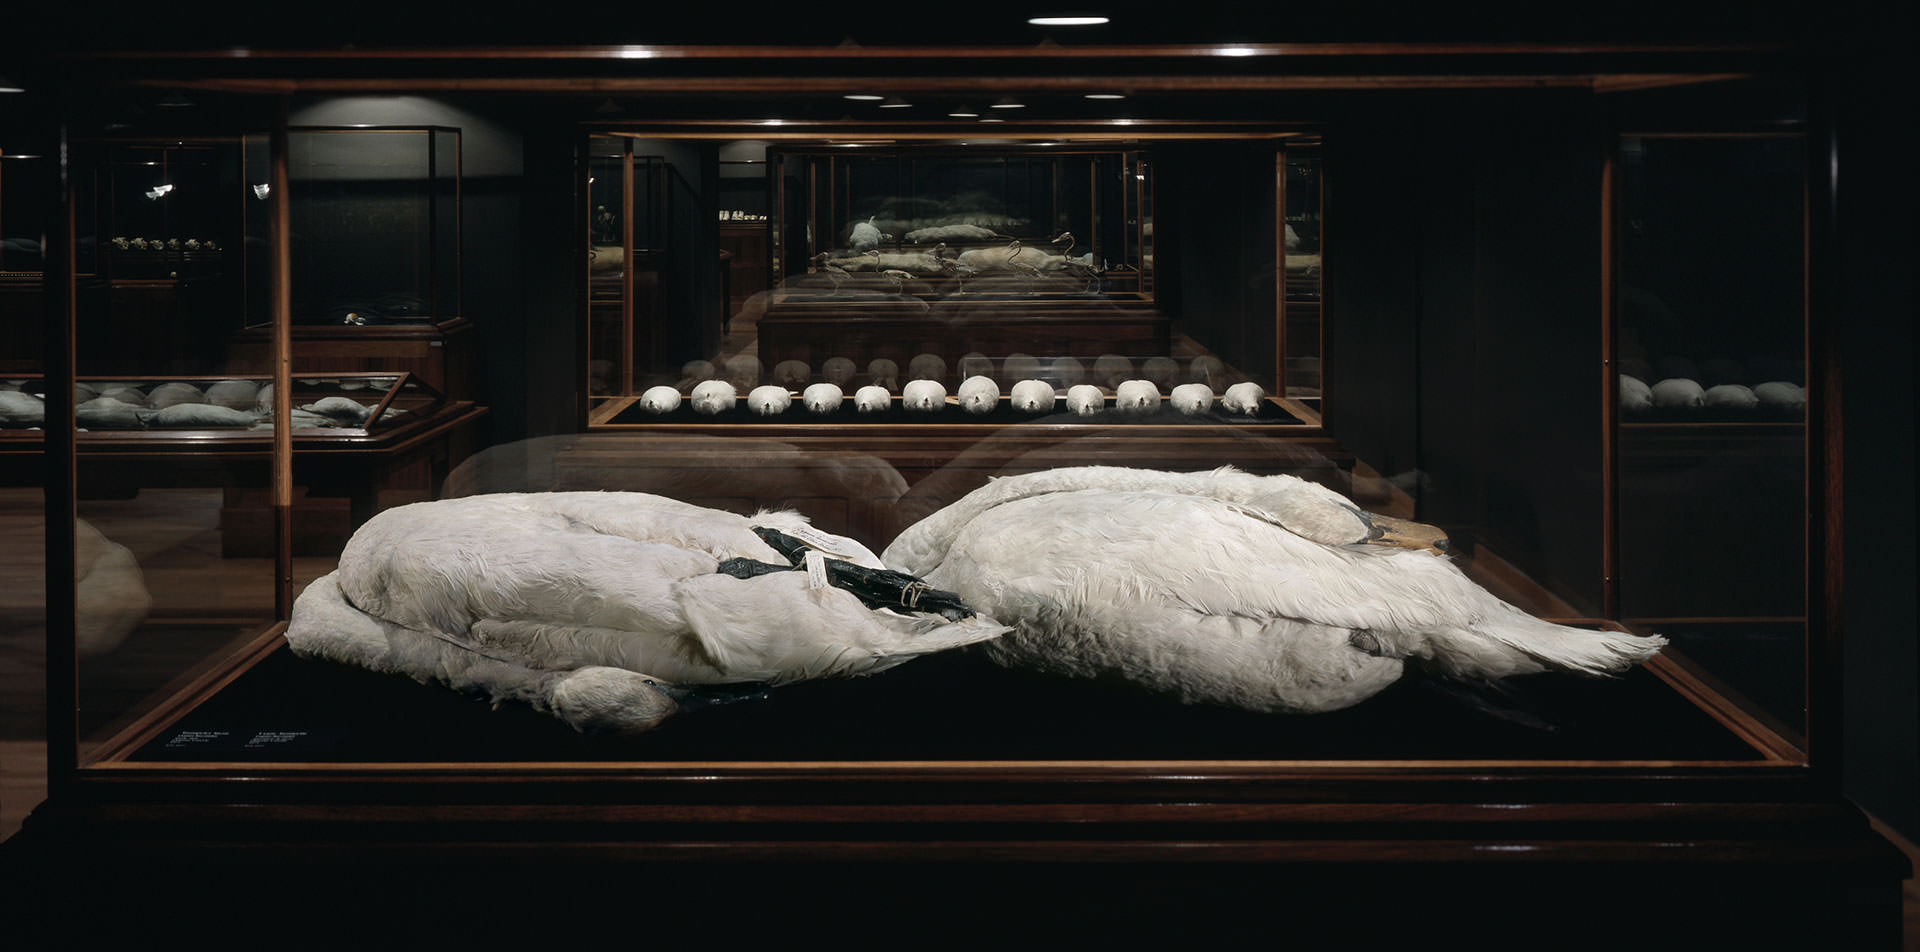 The Final Sleep/Le Dernier Sommeil , 2001, 4000 square feet, Forground - Mute and Trumpeter swan skins, Background - Ptarmigan bird skins, duck skeletons in a row, two Albino beavers. Royal Ontario Museum collection